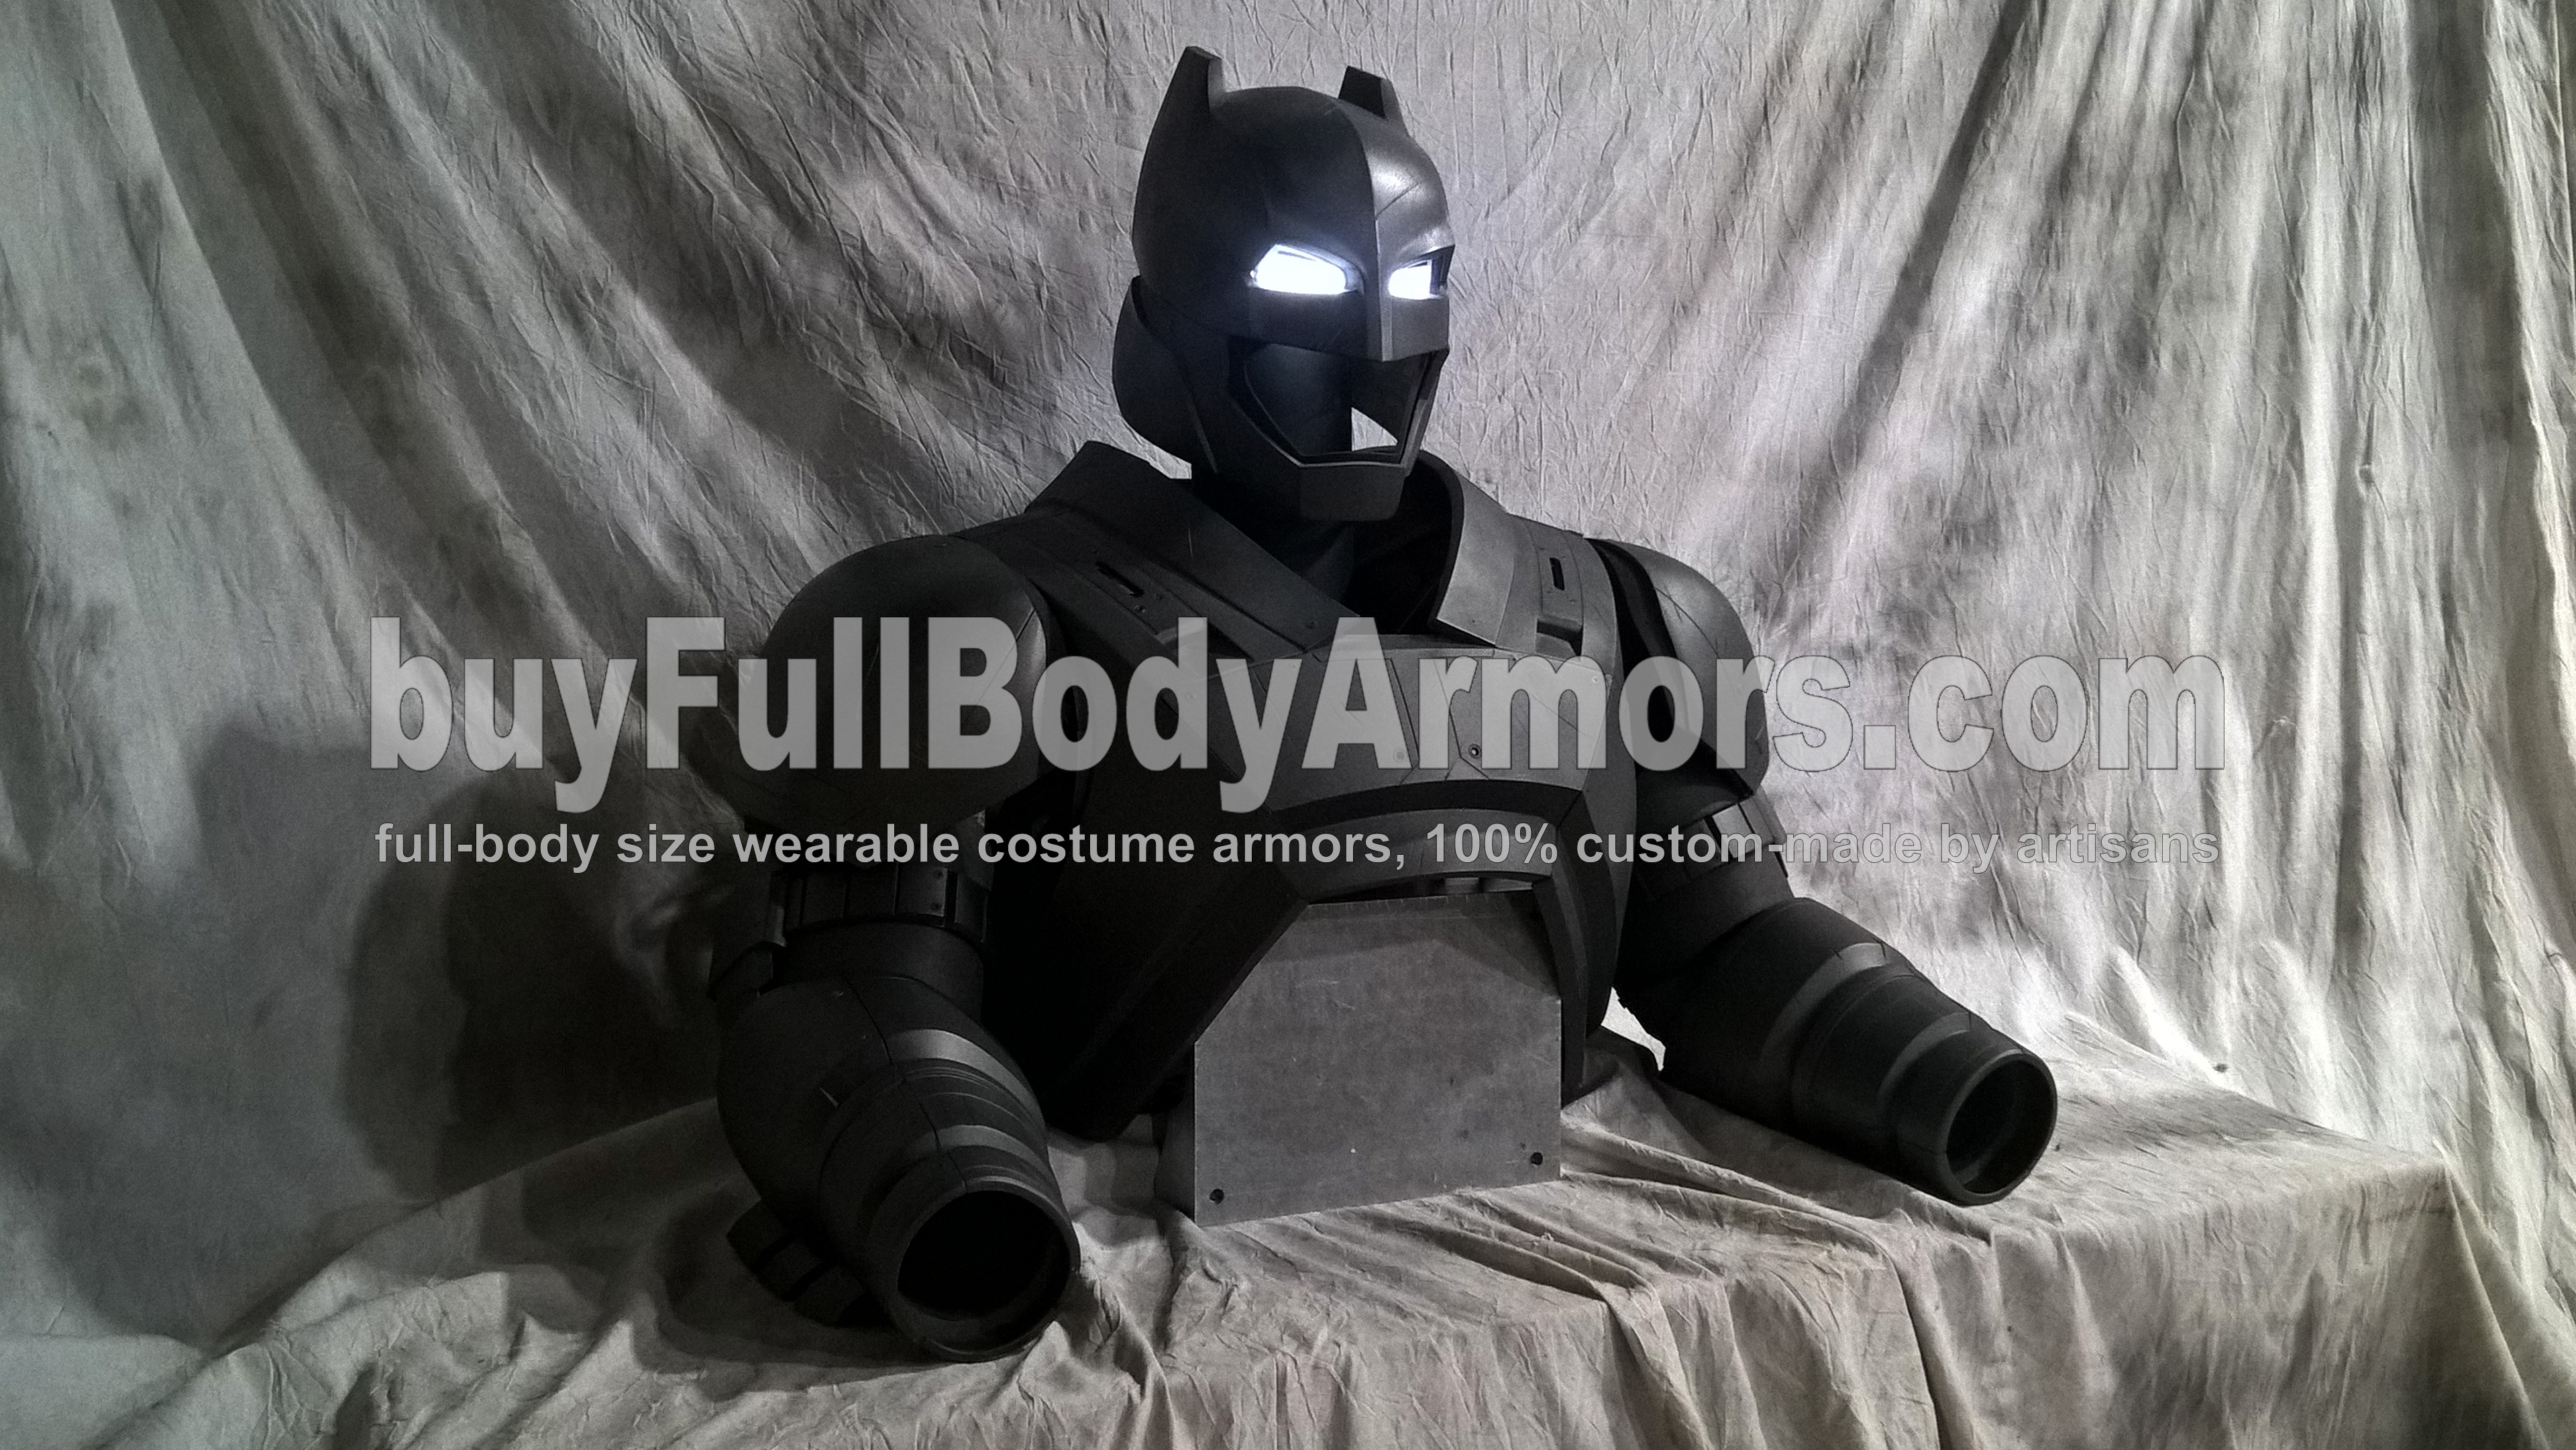 The New Wearable Armored Batsuit - the Batman Armor Costume Suit from the Movie Batman v Superman: Dawn Of Justice - the Top Half 2